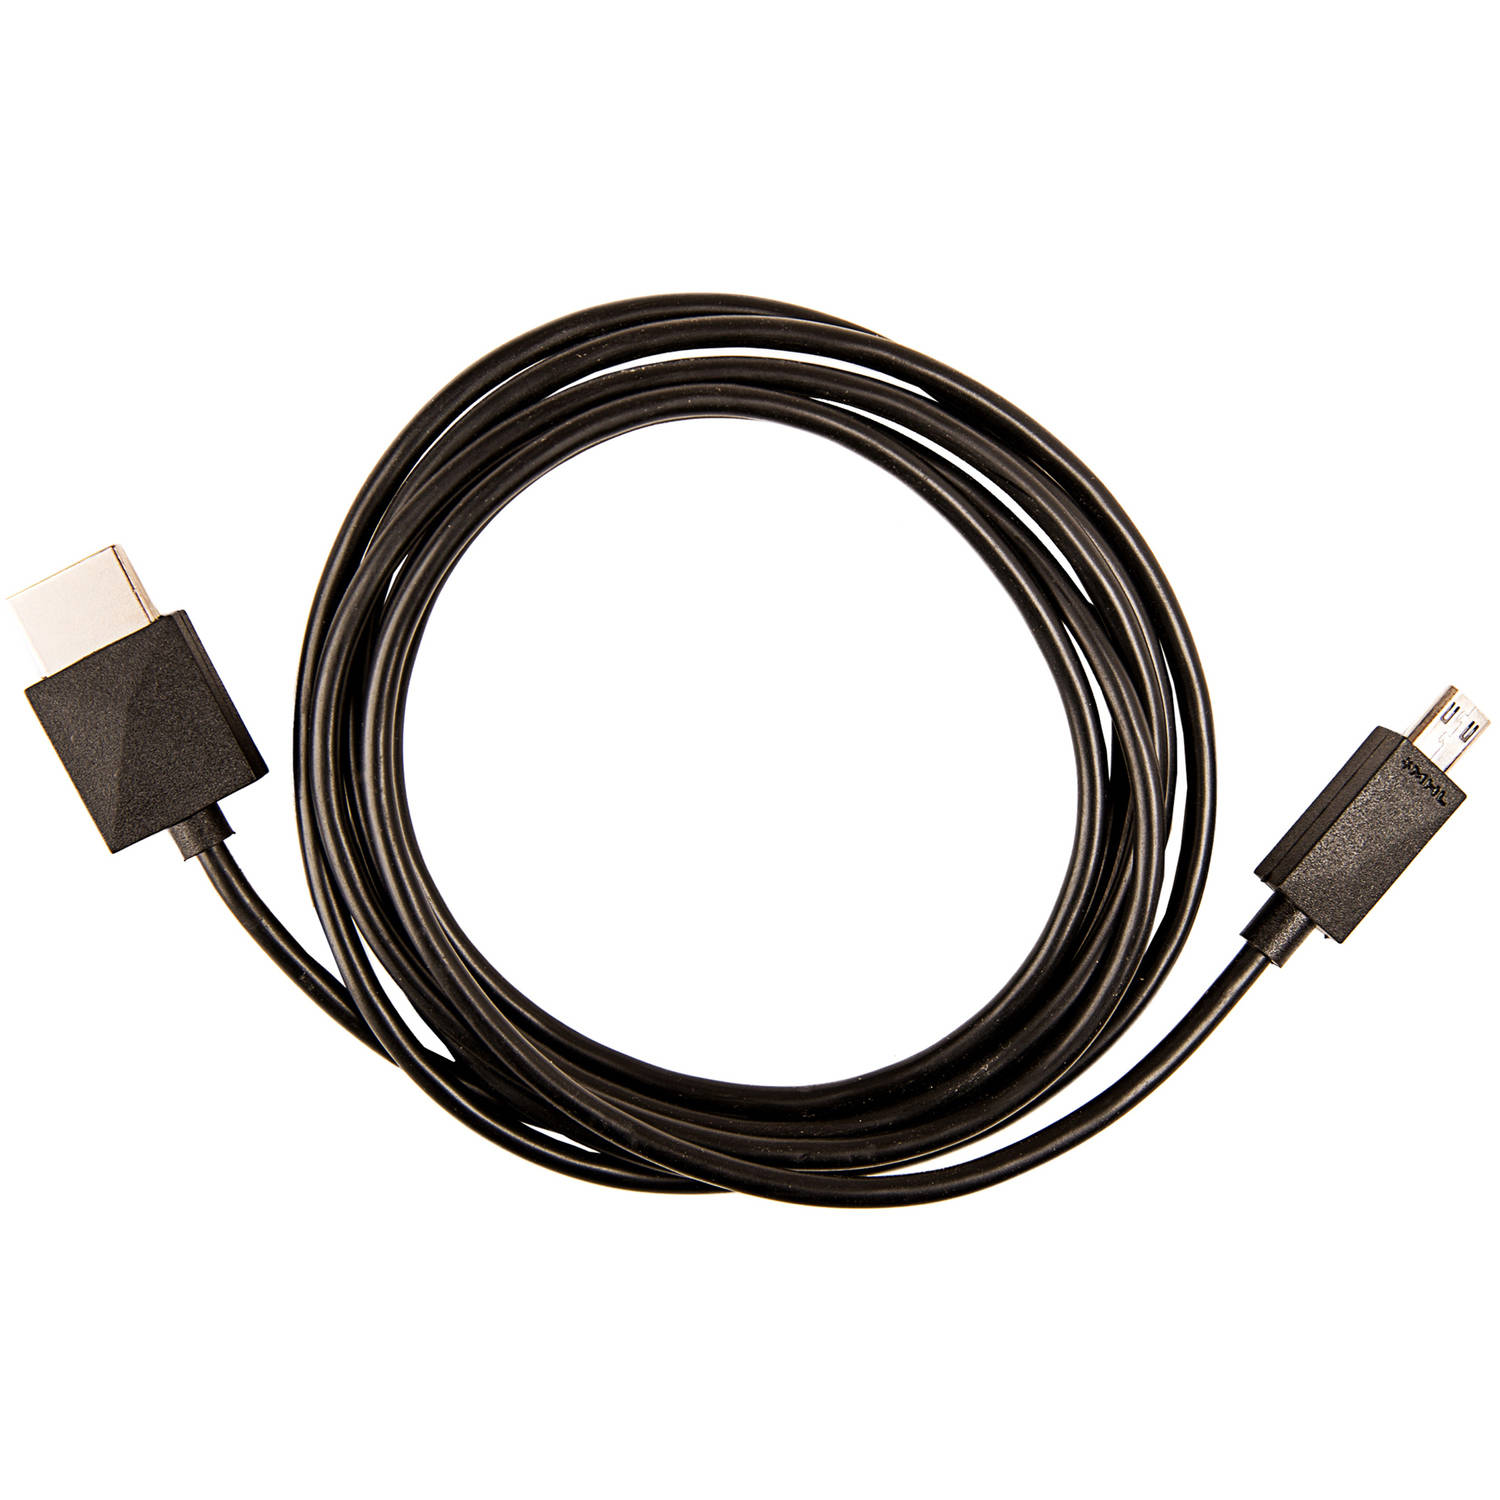 MHL 11-Pin microUSB to HDMI Cable, 6' Long